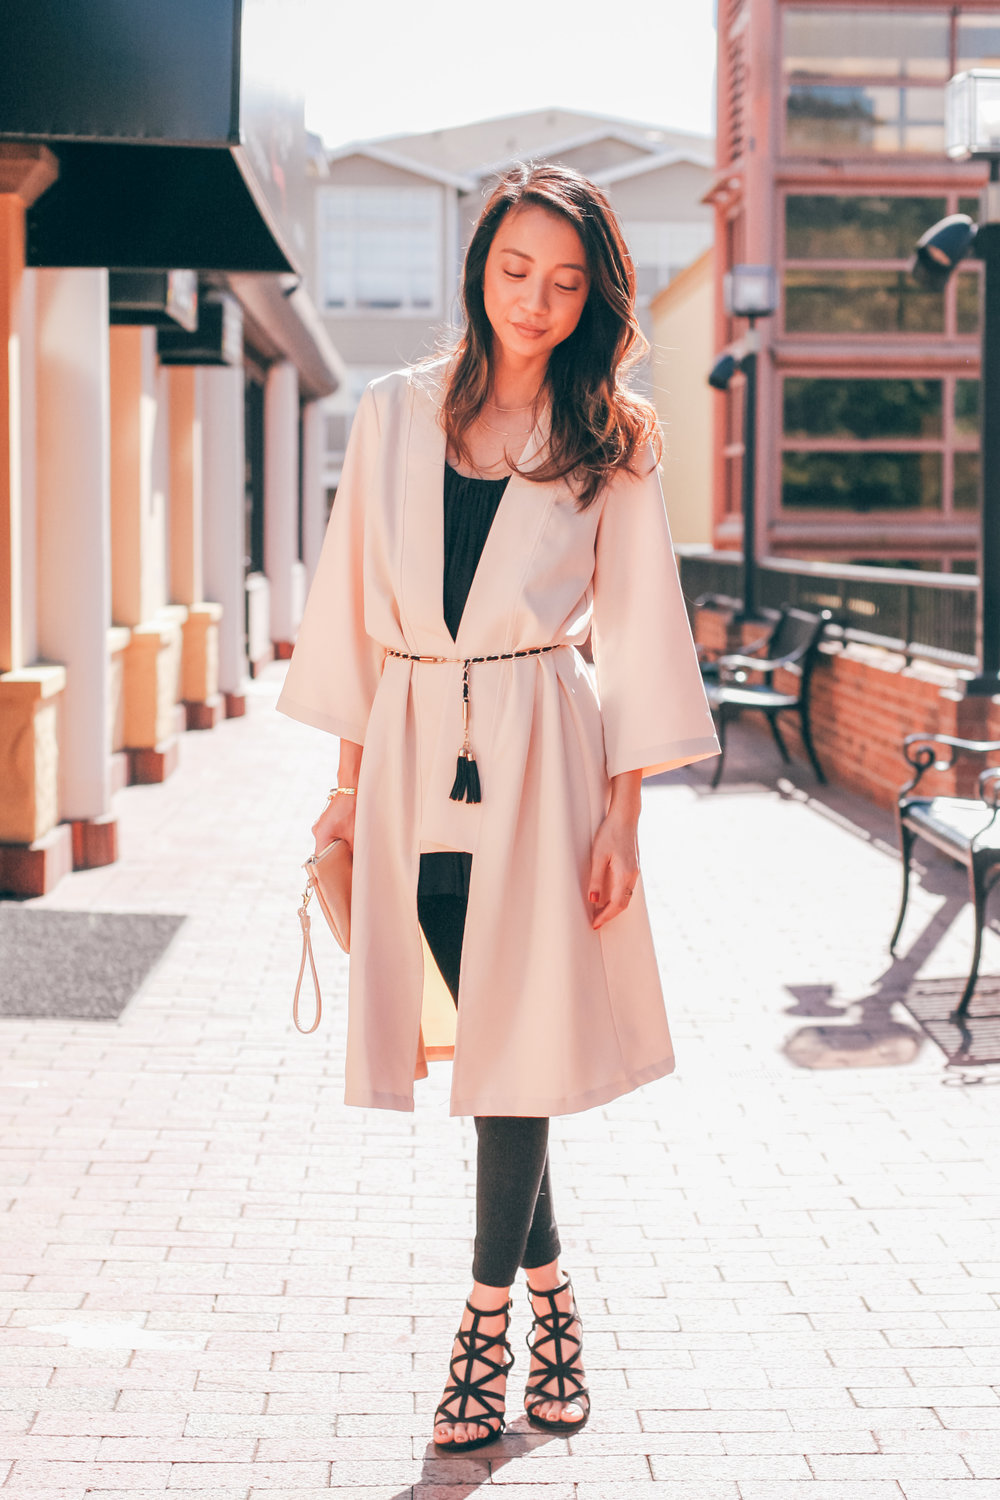 This Jenn Girl - Make Me Chic Duster 1